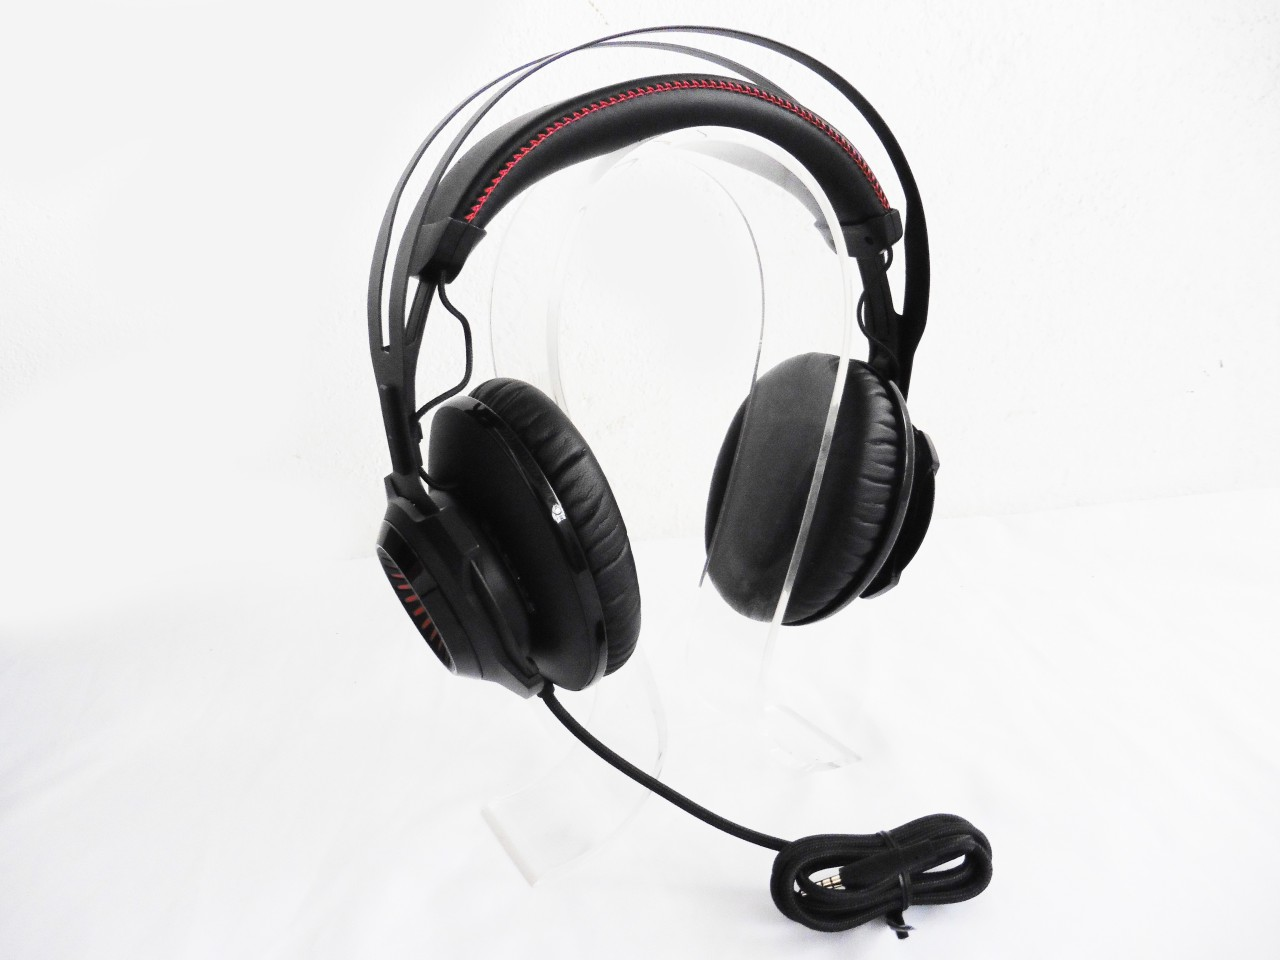 Kind of lining can you expect on the kingston hyperx cloud ii headset - The Design Of The Hyperx Cloud Revolver Looks Nothing Like Any Hyperx Cloud Headset We Ve Seen In The Past And It Does Remind Us Of The Steelseries Siberia